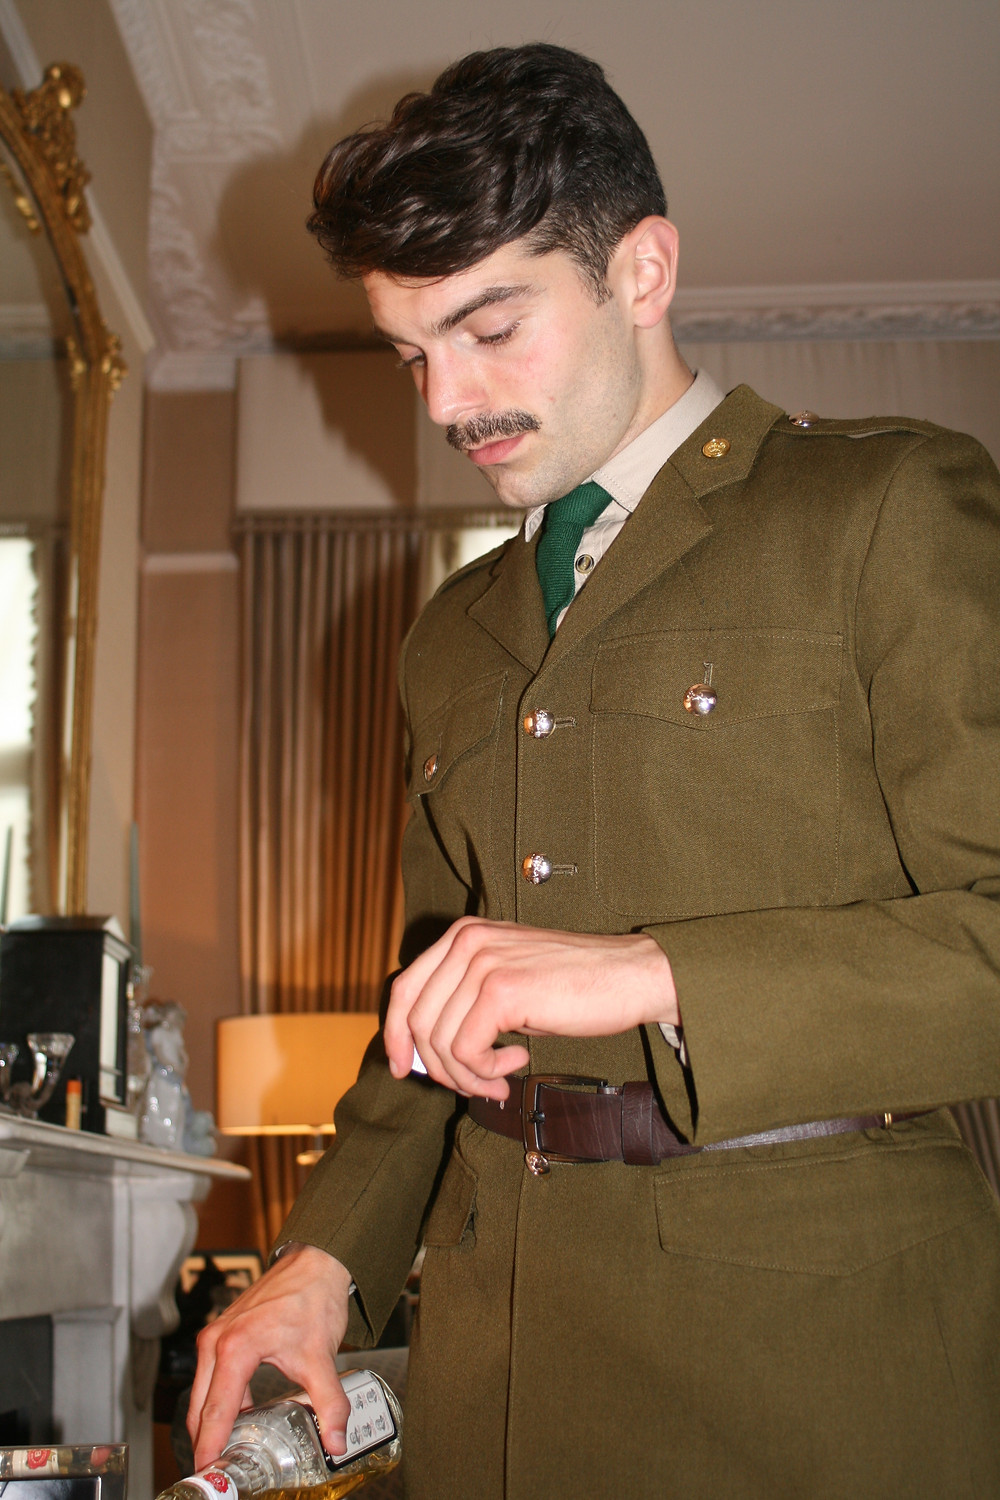 Man in WW2 soldier uniform pouring whisky